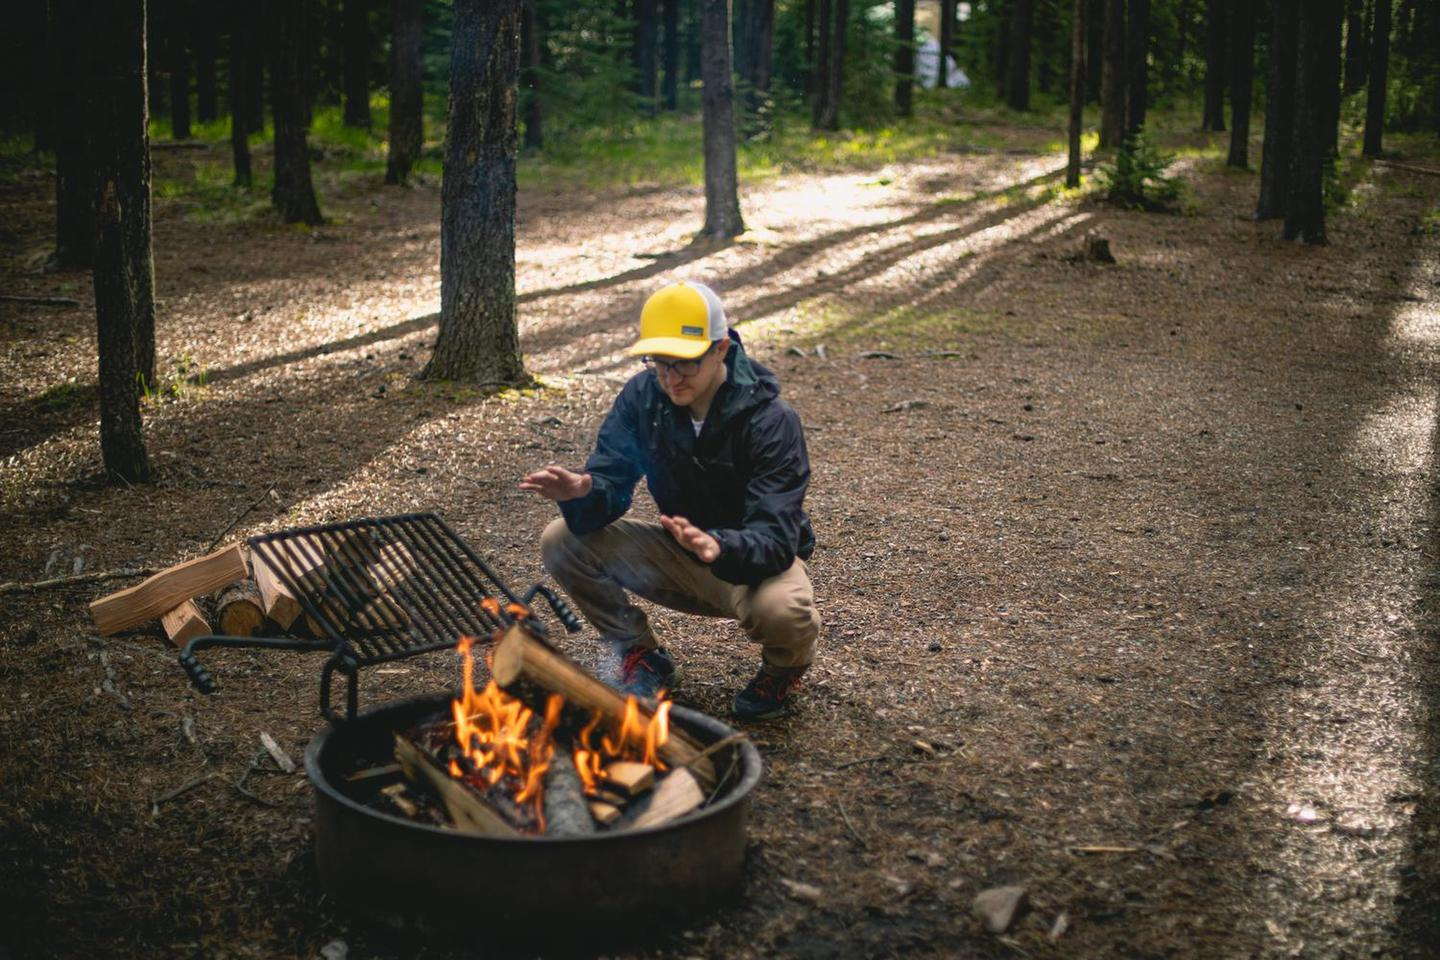 Campfire at Bowman Lake CampgroundA camper wearing a bright hat warms their hands while squatting near a campfire in a forest clearing.